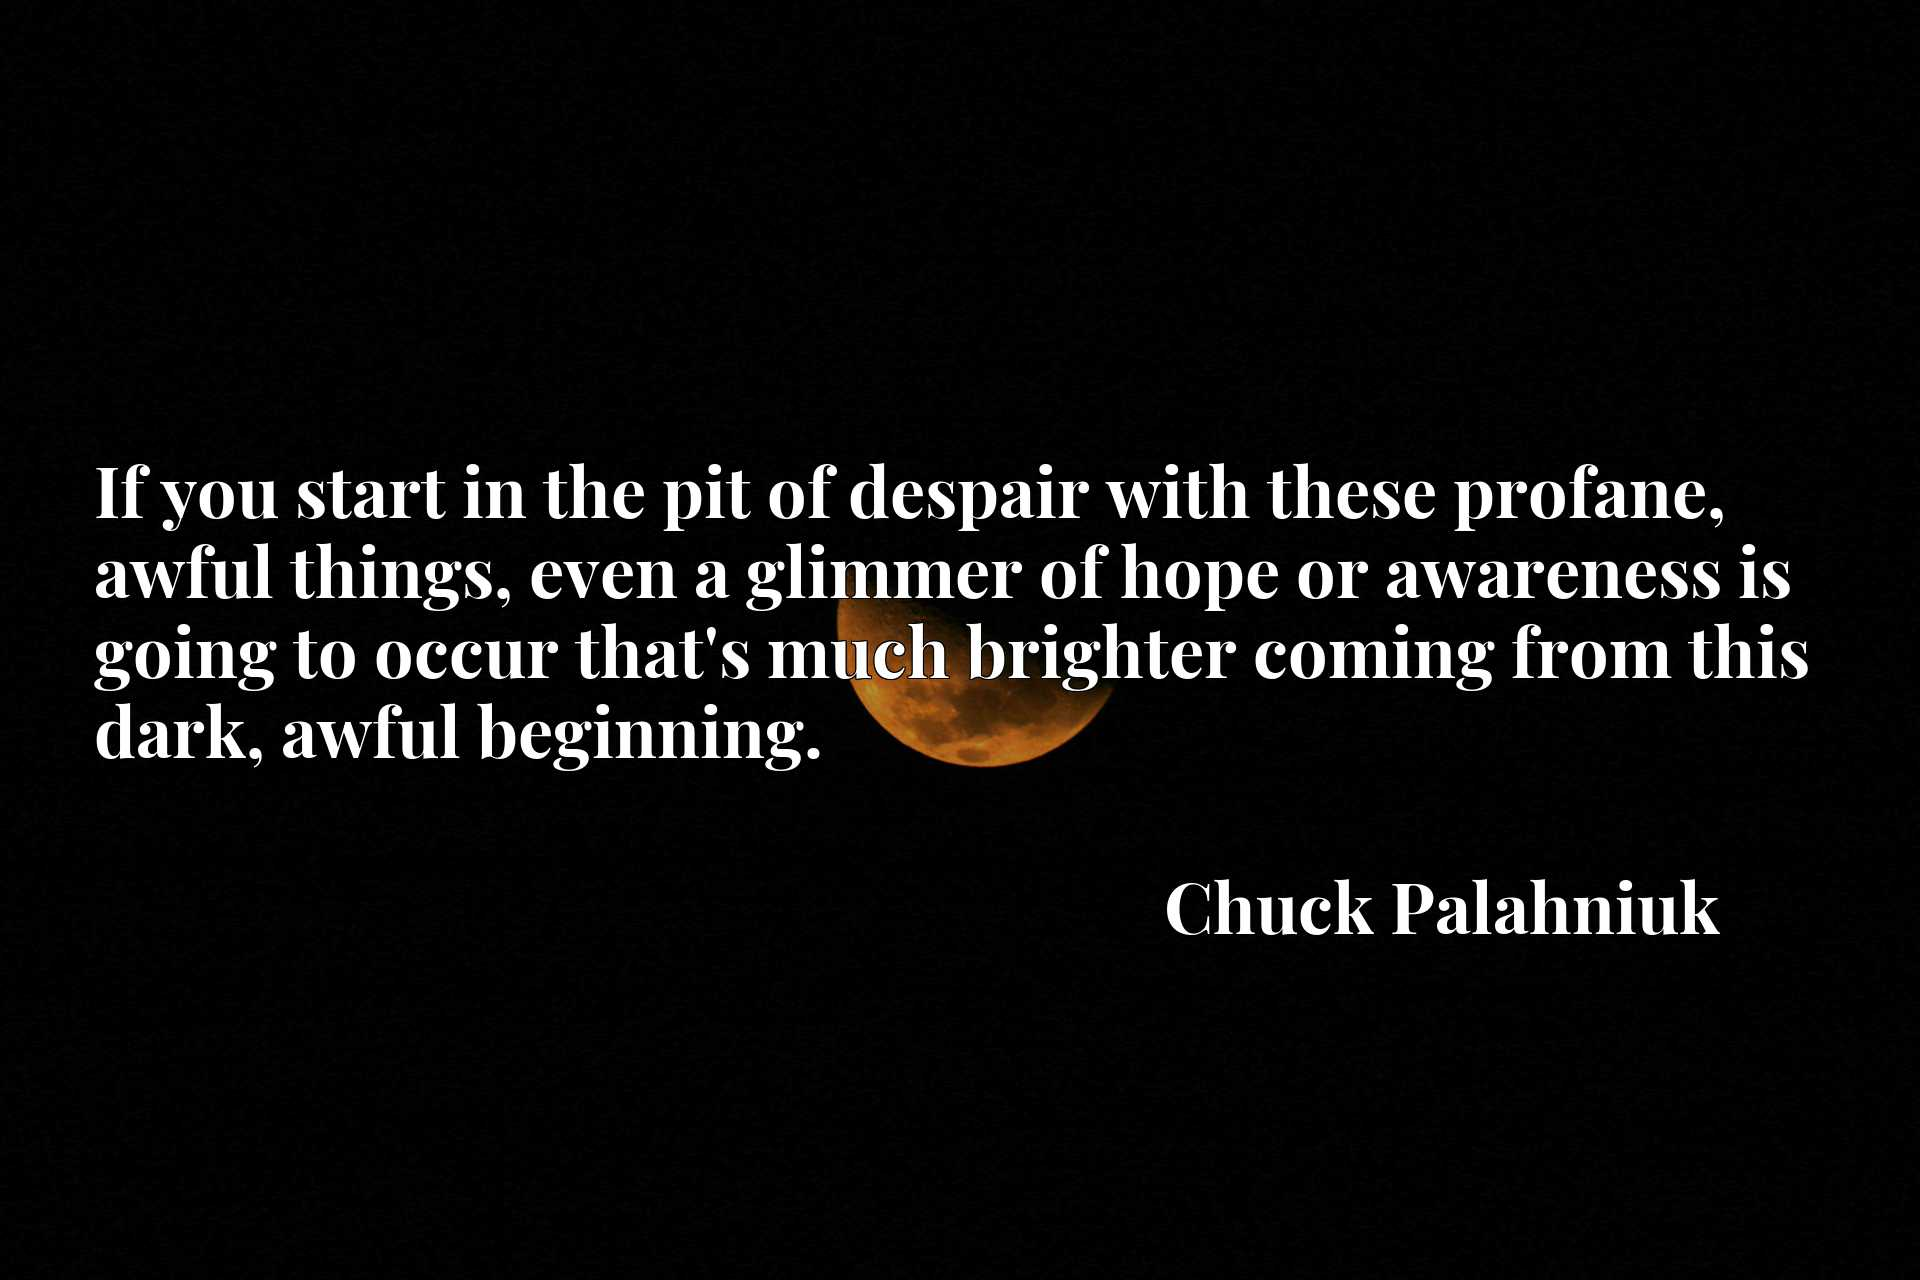 If you start in the pit of despair with these profane, awful things, even a glimmer of hope or awareness is going to occur that's much brighter coming from this dark, awful beginning.